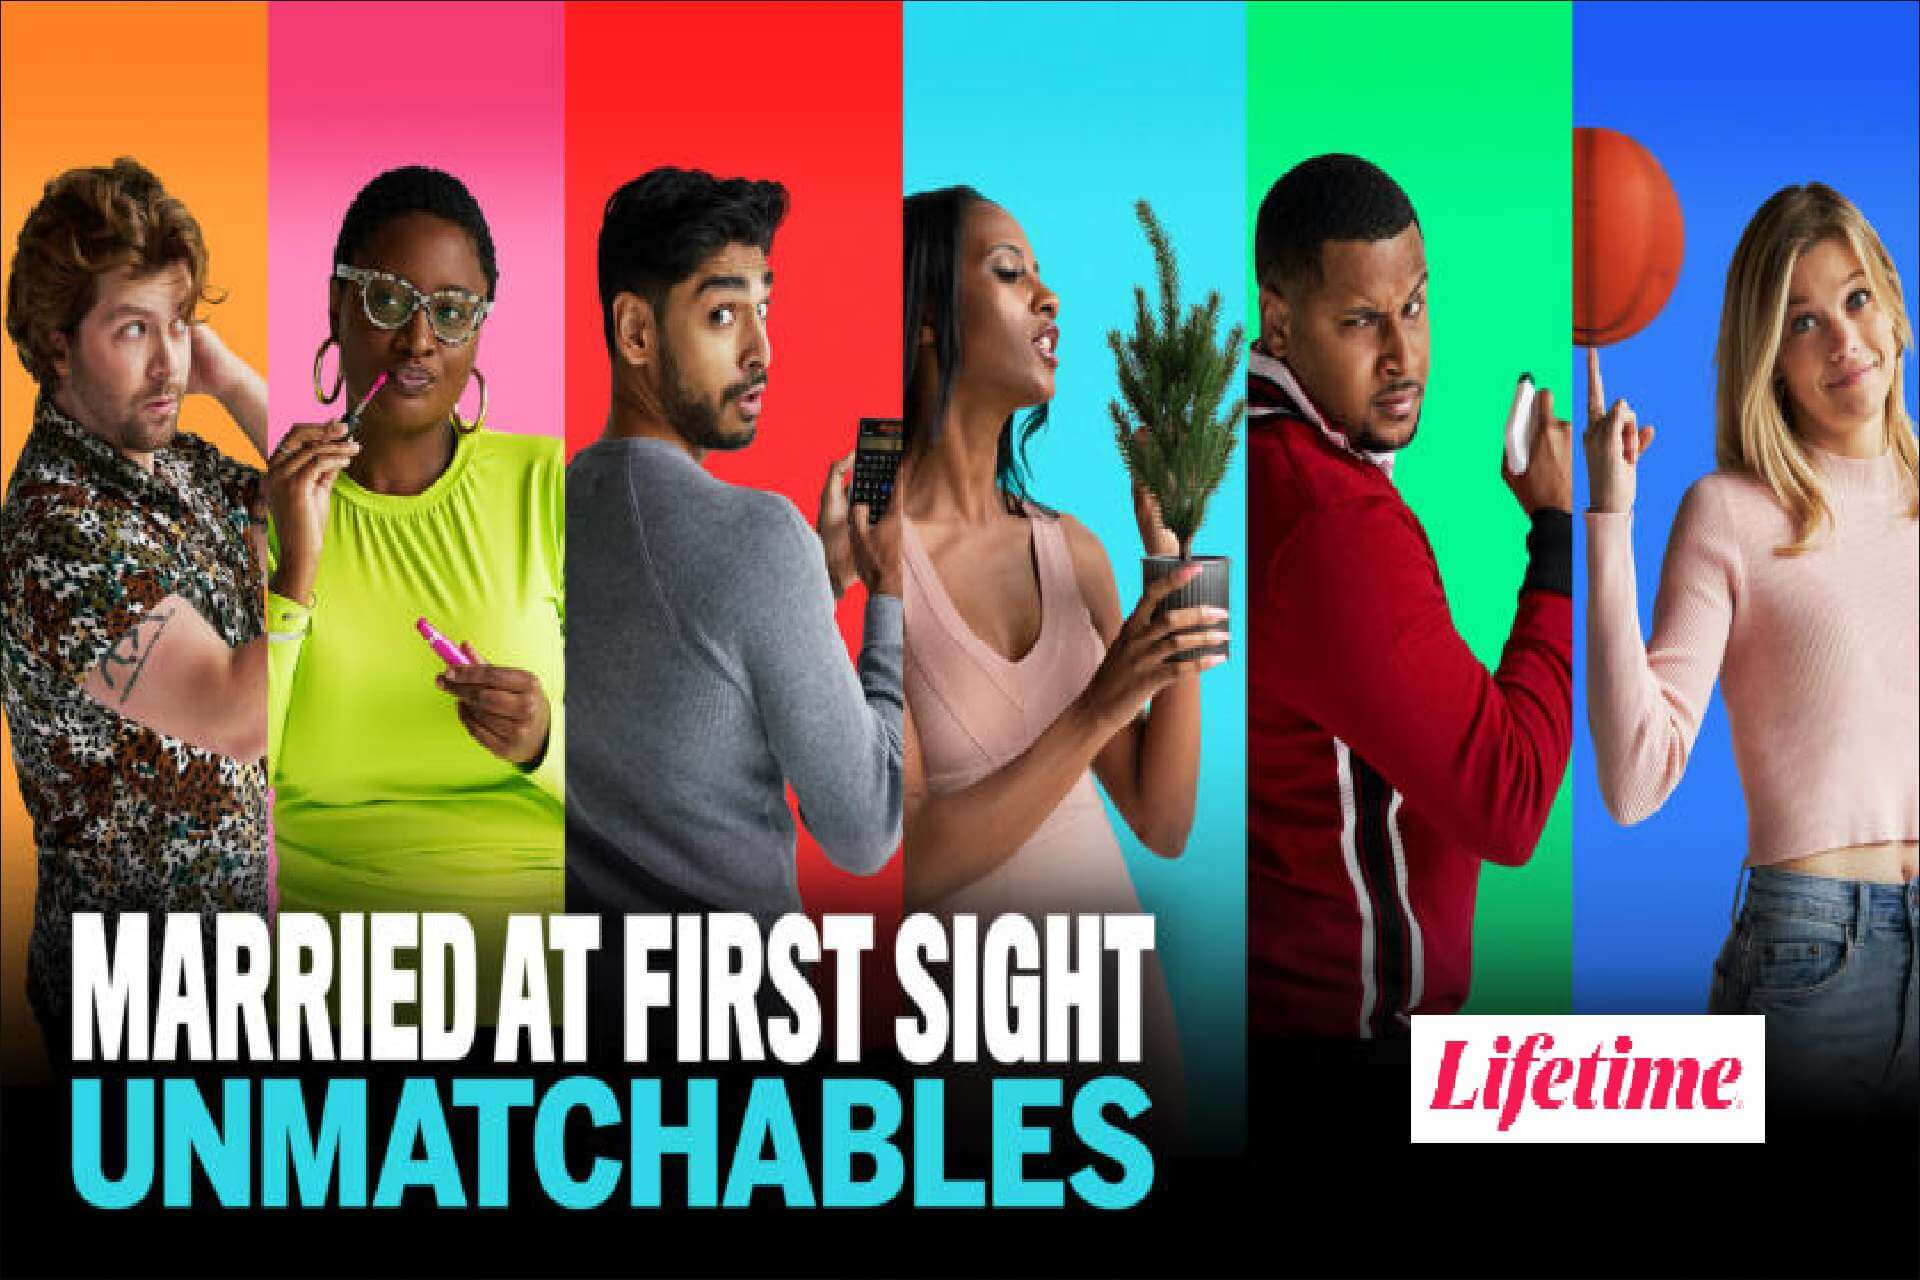 mylifetime.com/activate – How to Activate Lifetime on Your Device